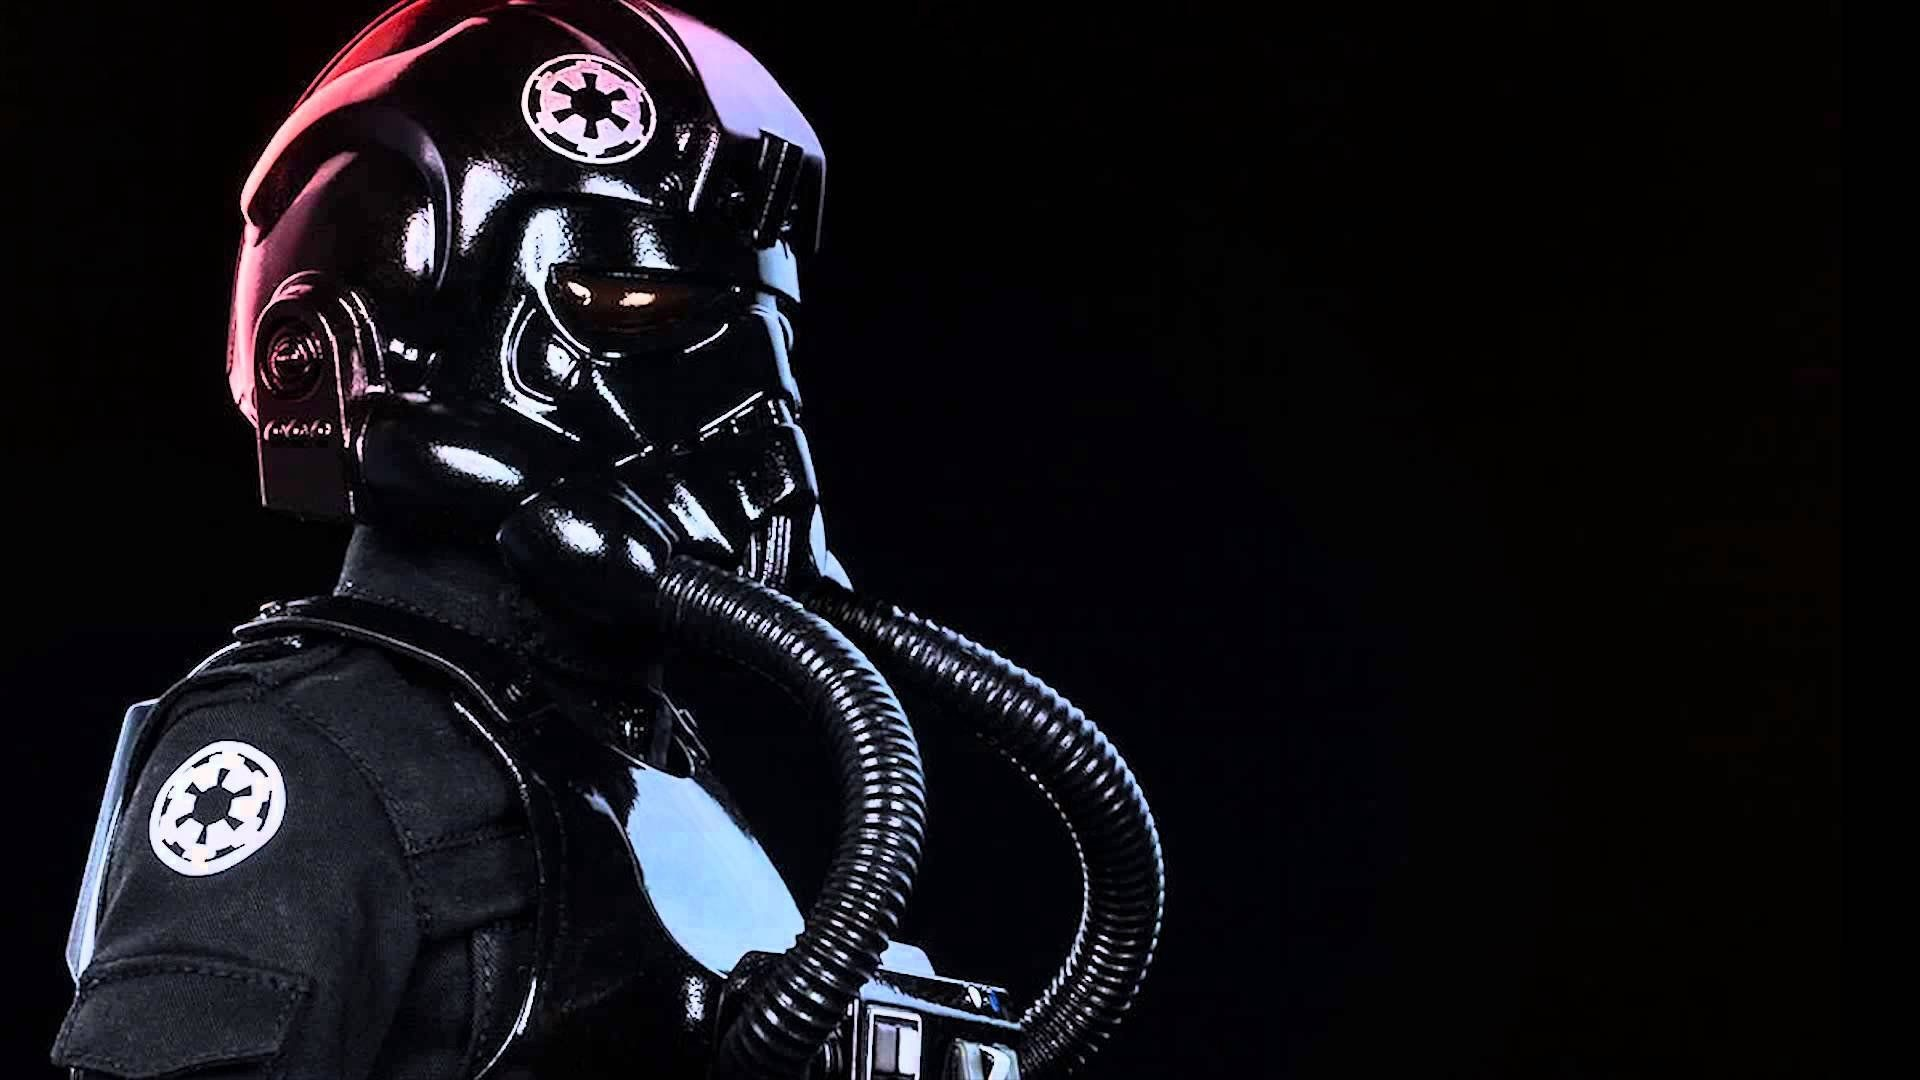 TIE Fighter Images. TIE Fighter HD Wallpapers